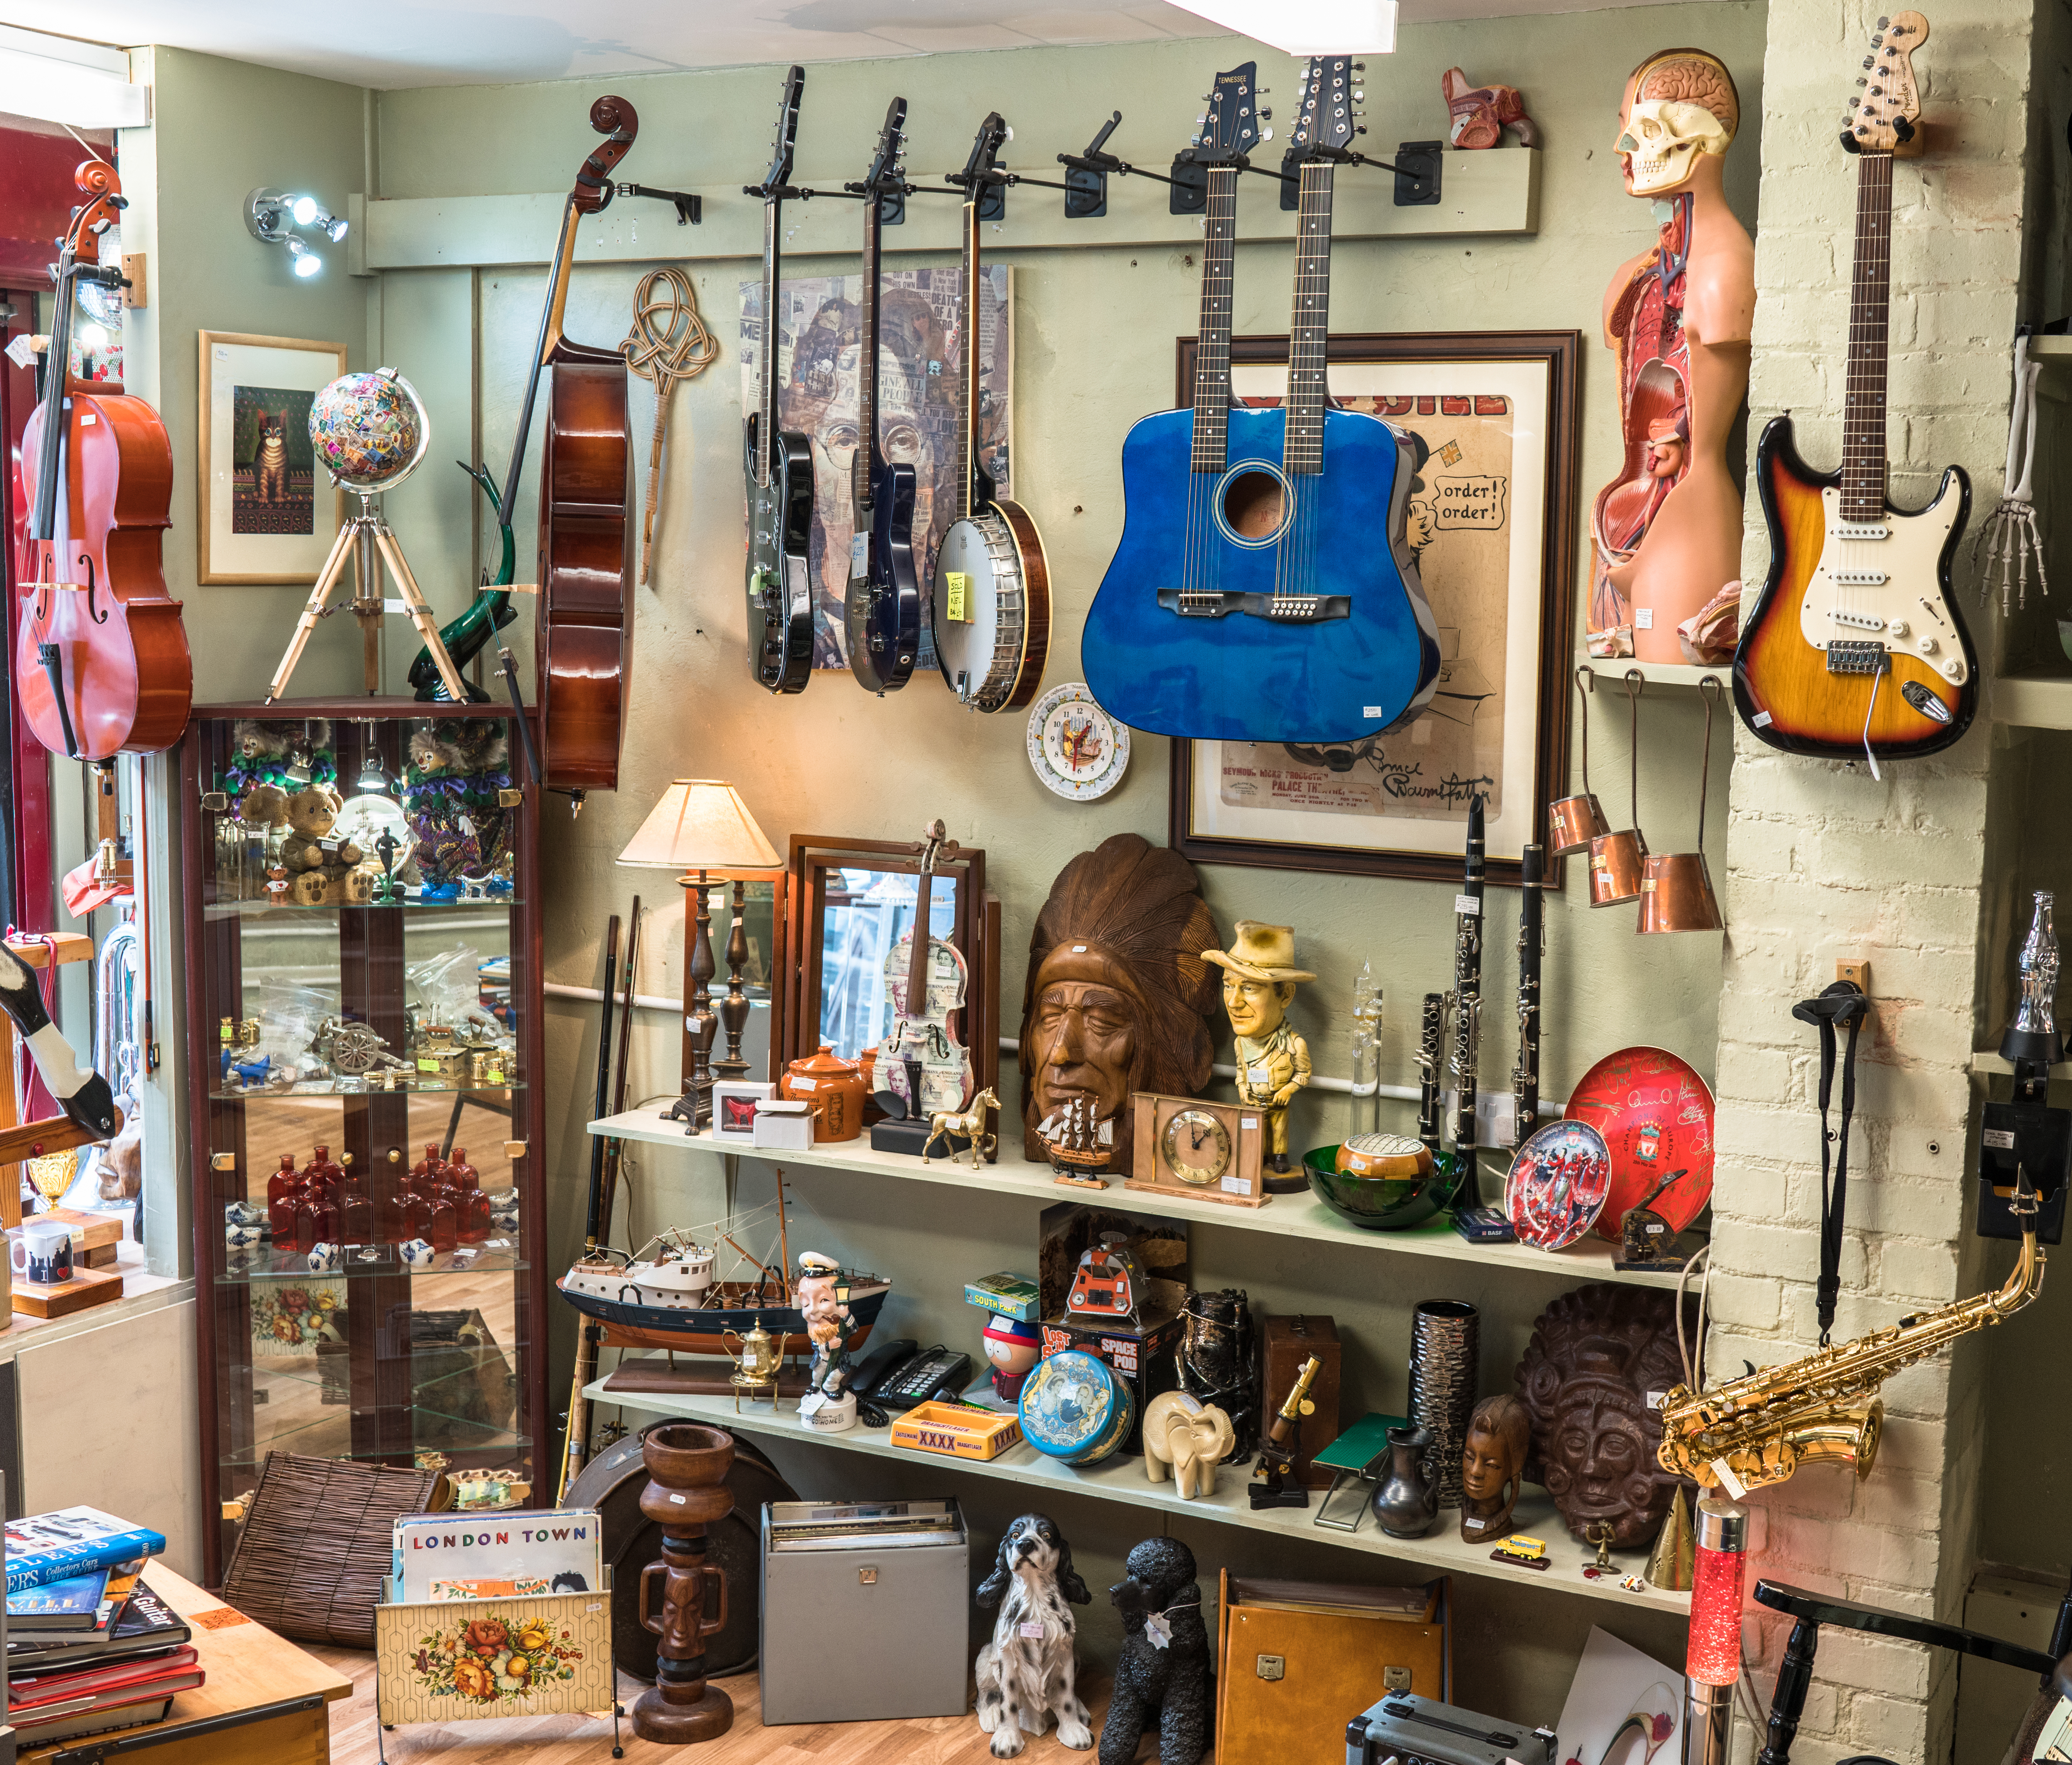 second hand september - shop selling second hand good including guitars and furniture